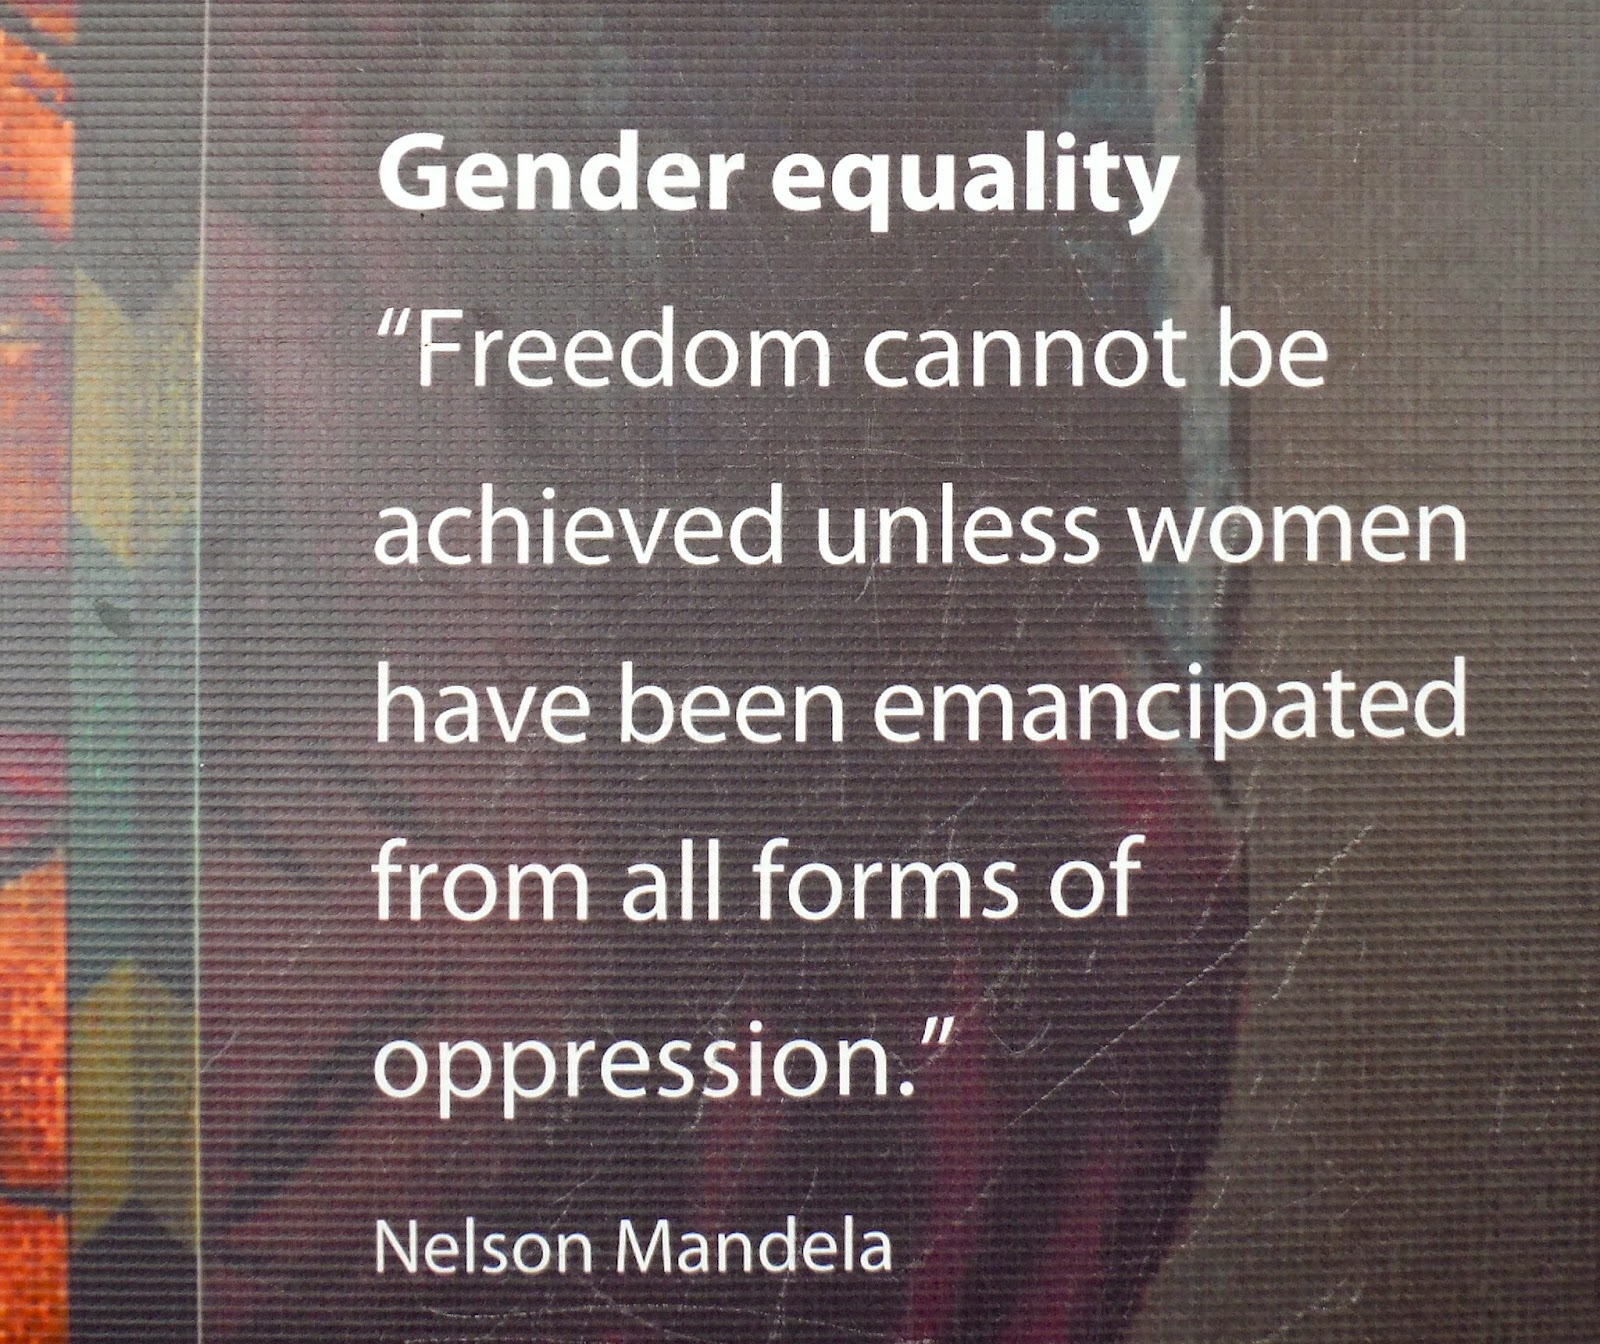 an essay on gender equity Essay gender inequality the issue of gender inequality is one which has been publicly reverberating through society for decades the problem of inequality in employment being one of the most pressing issues today.